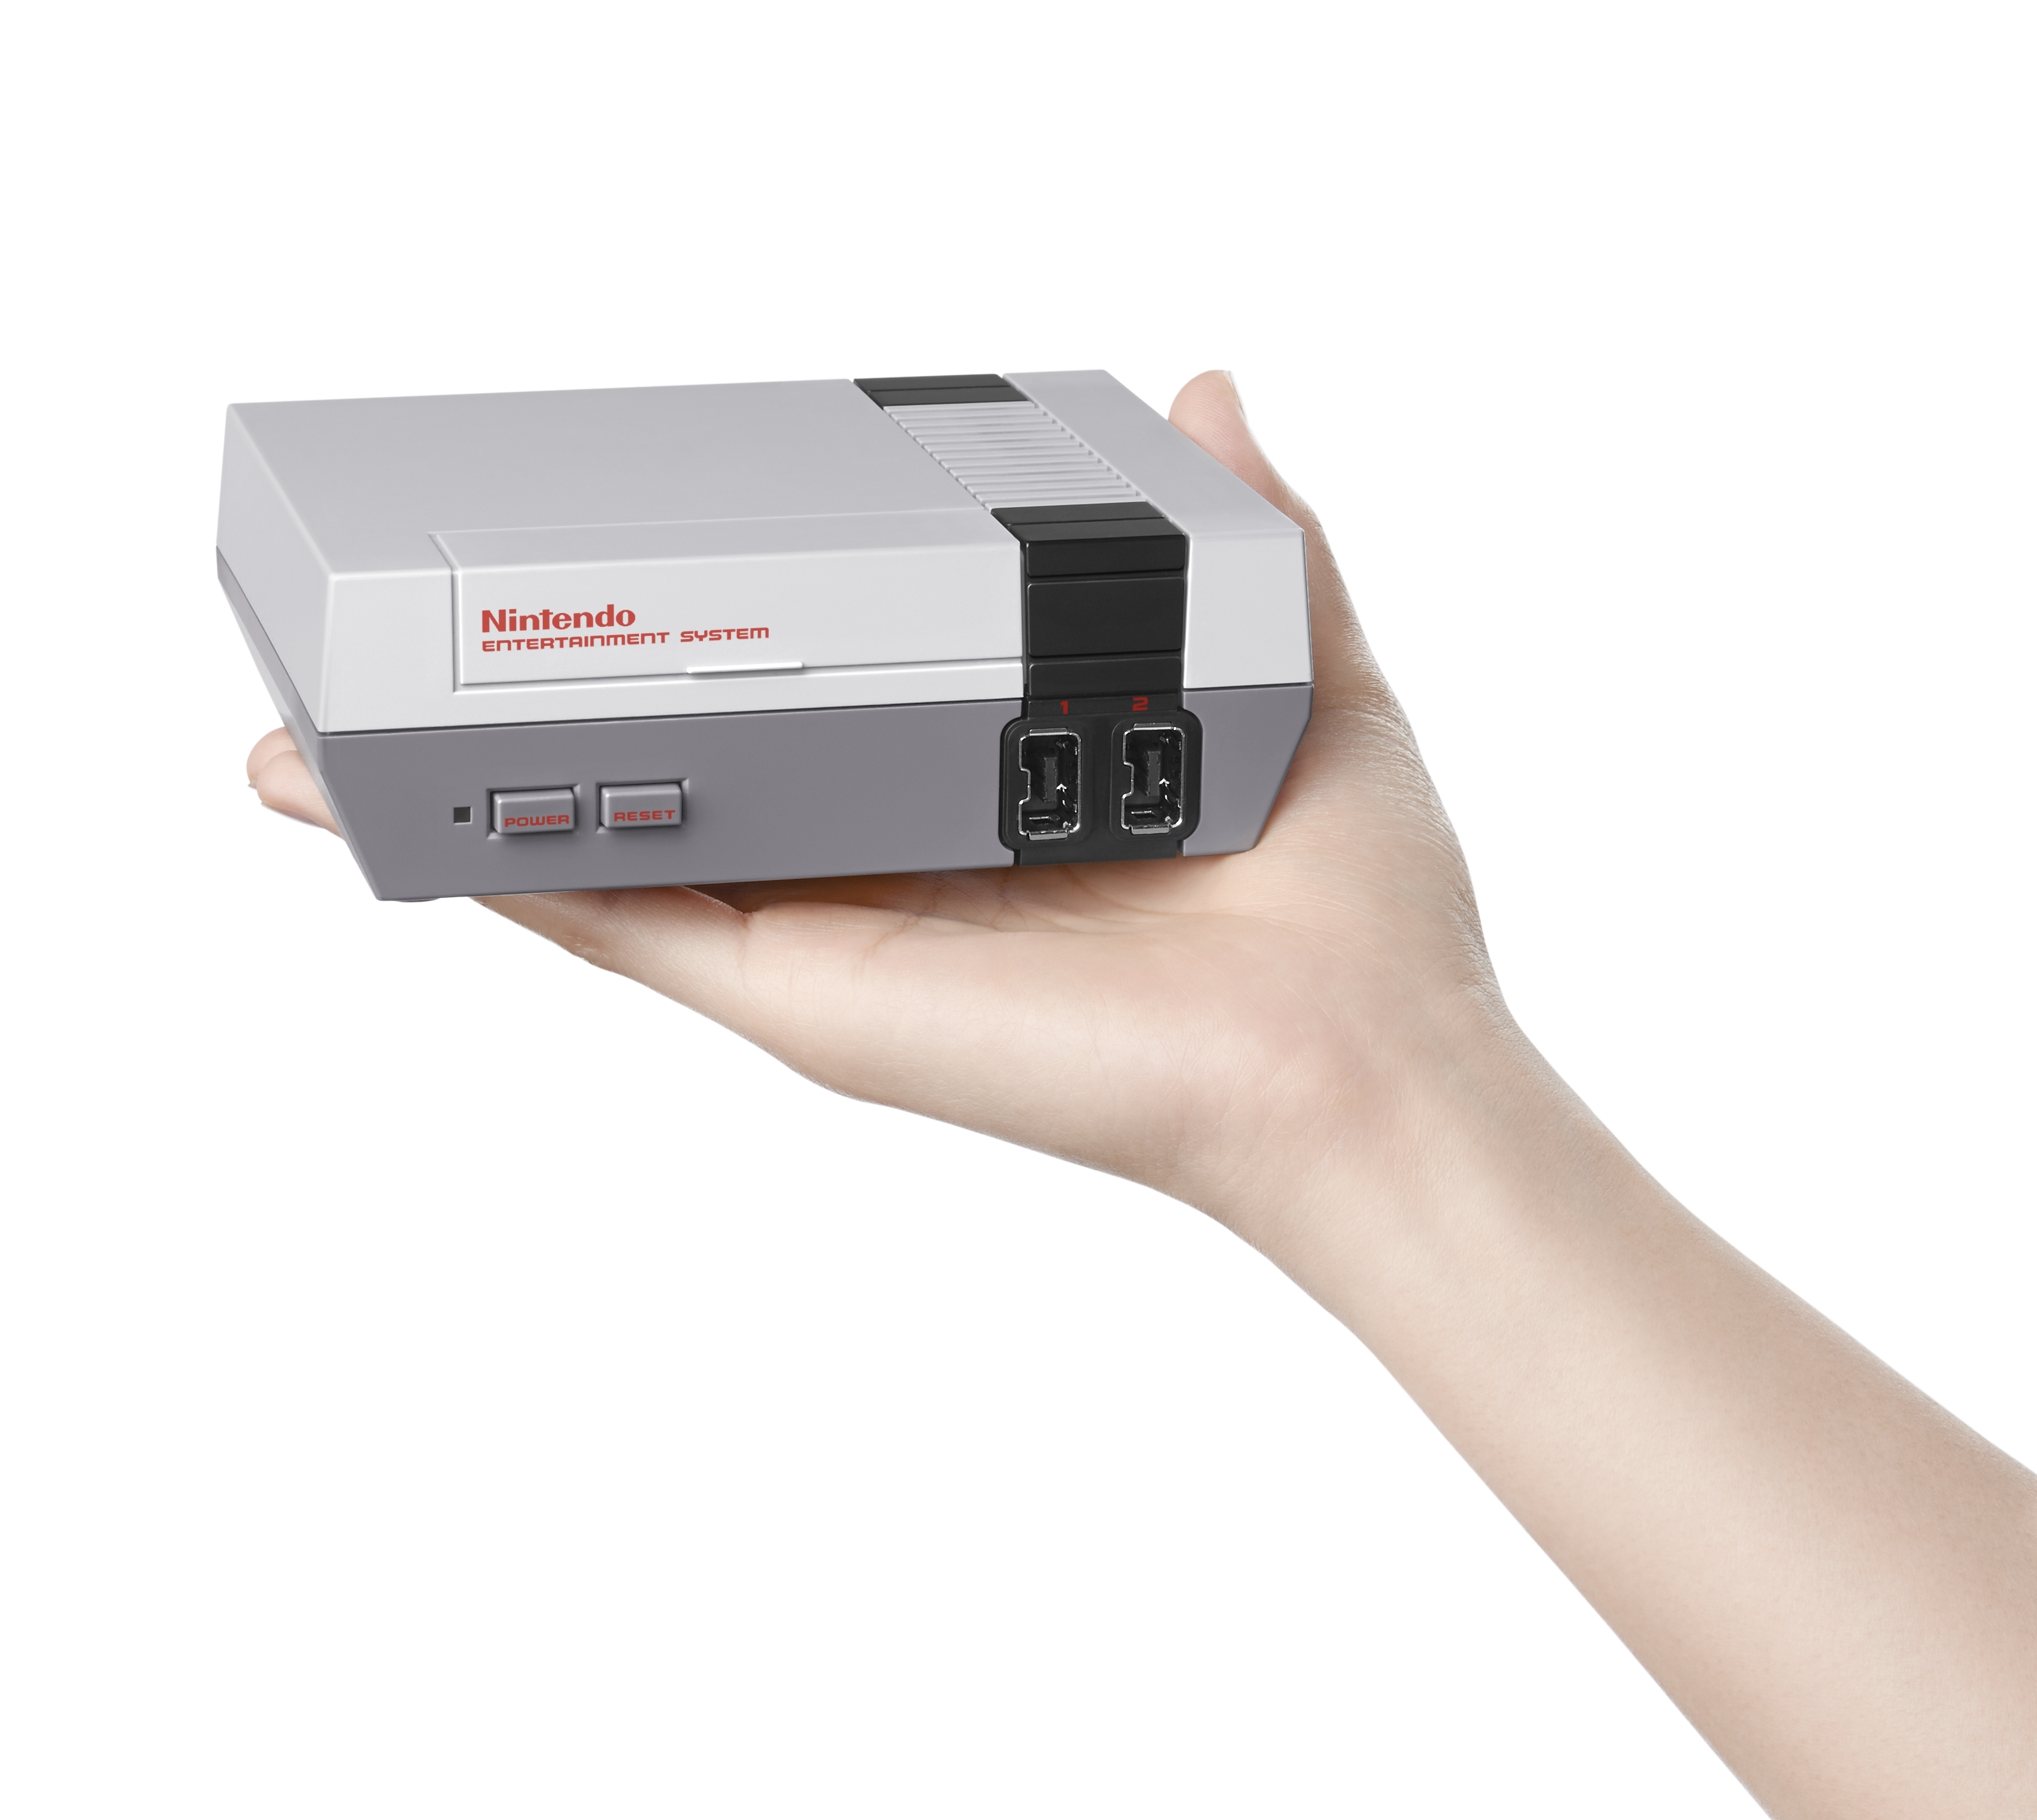 This new nostalgia-fueled system is a near-identical, mini replica of Nintendo's original home console and plugs directly into your high-definition TV using an included HDMI cable. (Photo: Business Wire)